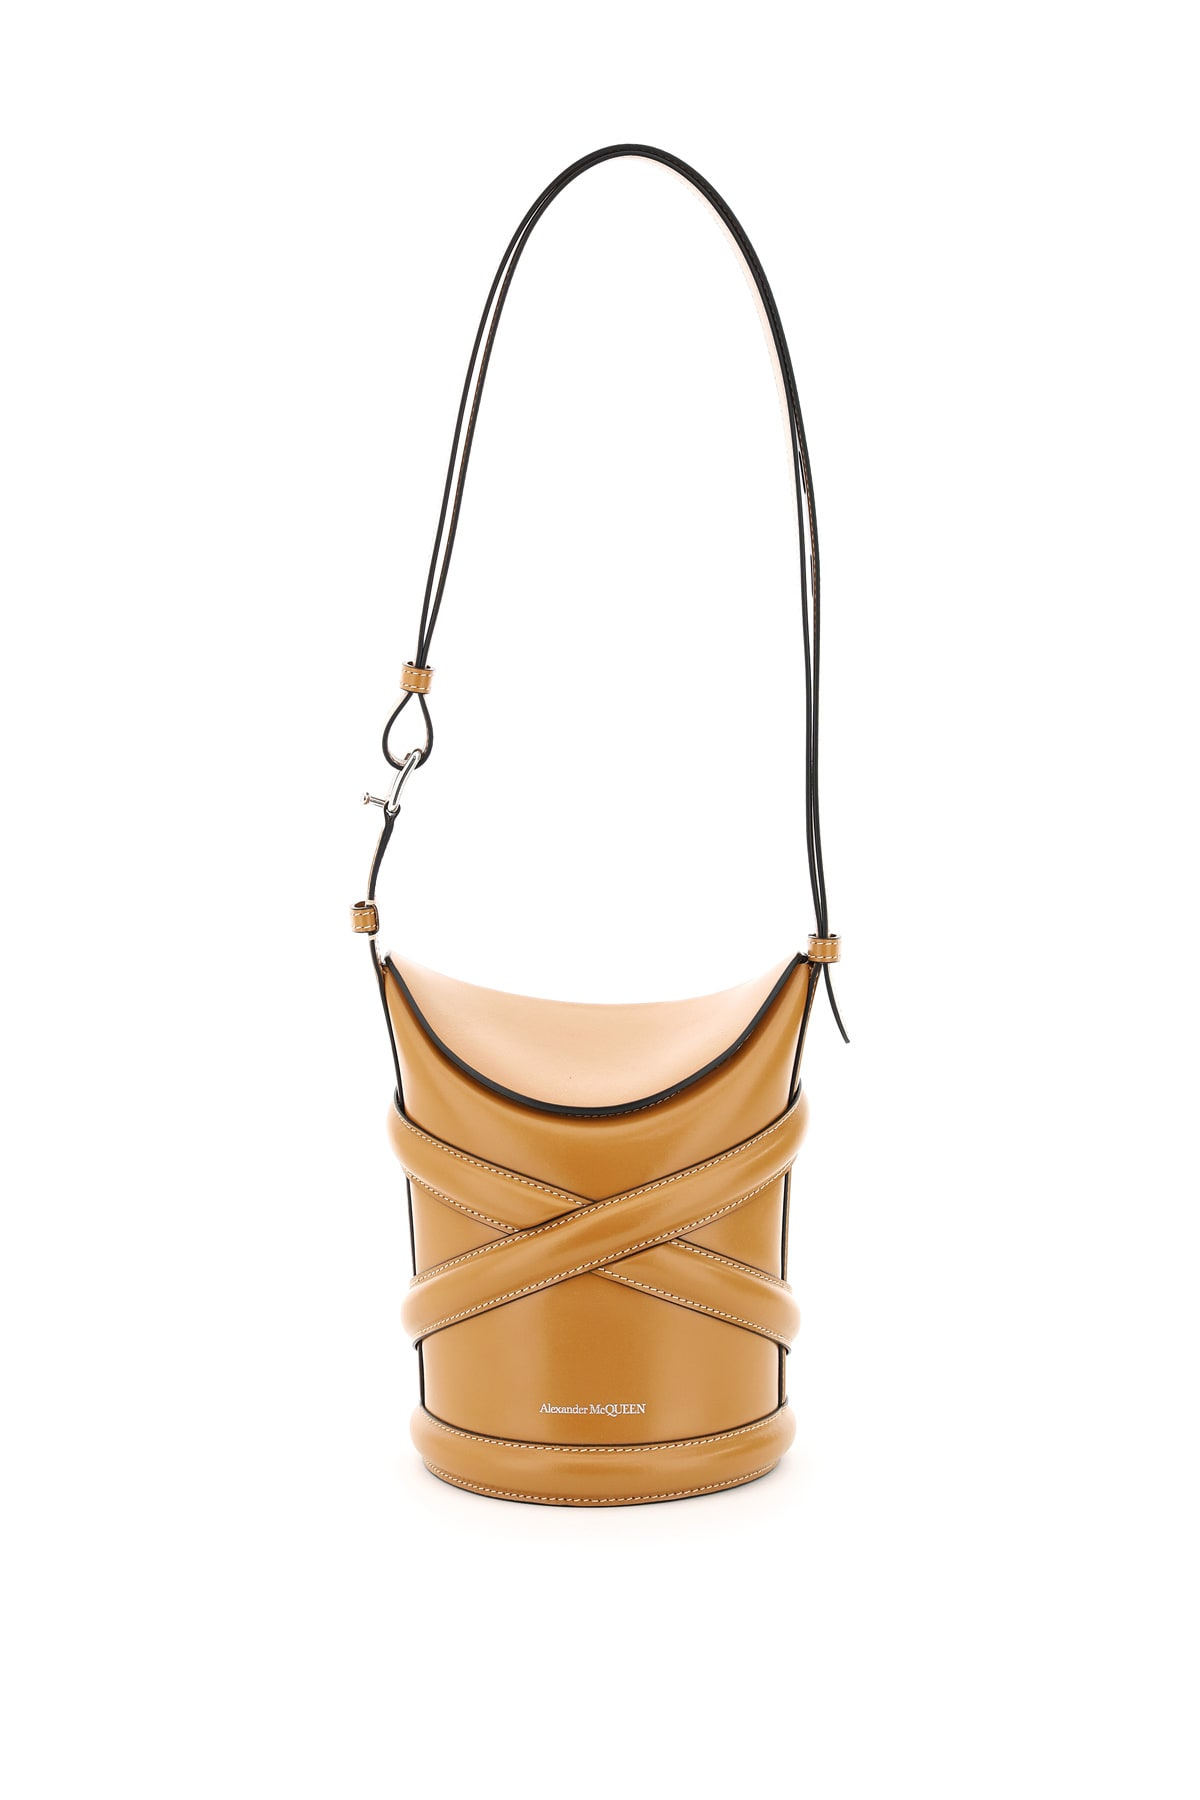 Alexander Mcqueen THE SMALL CURVE BUCKET BAG